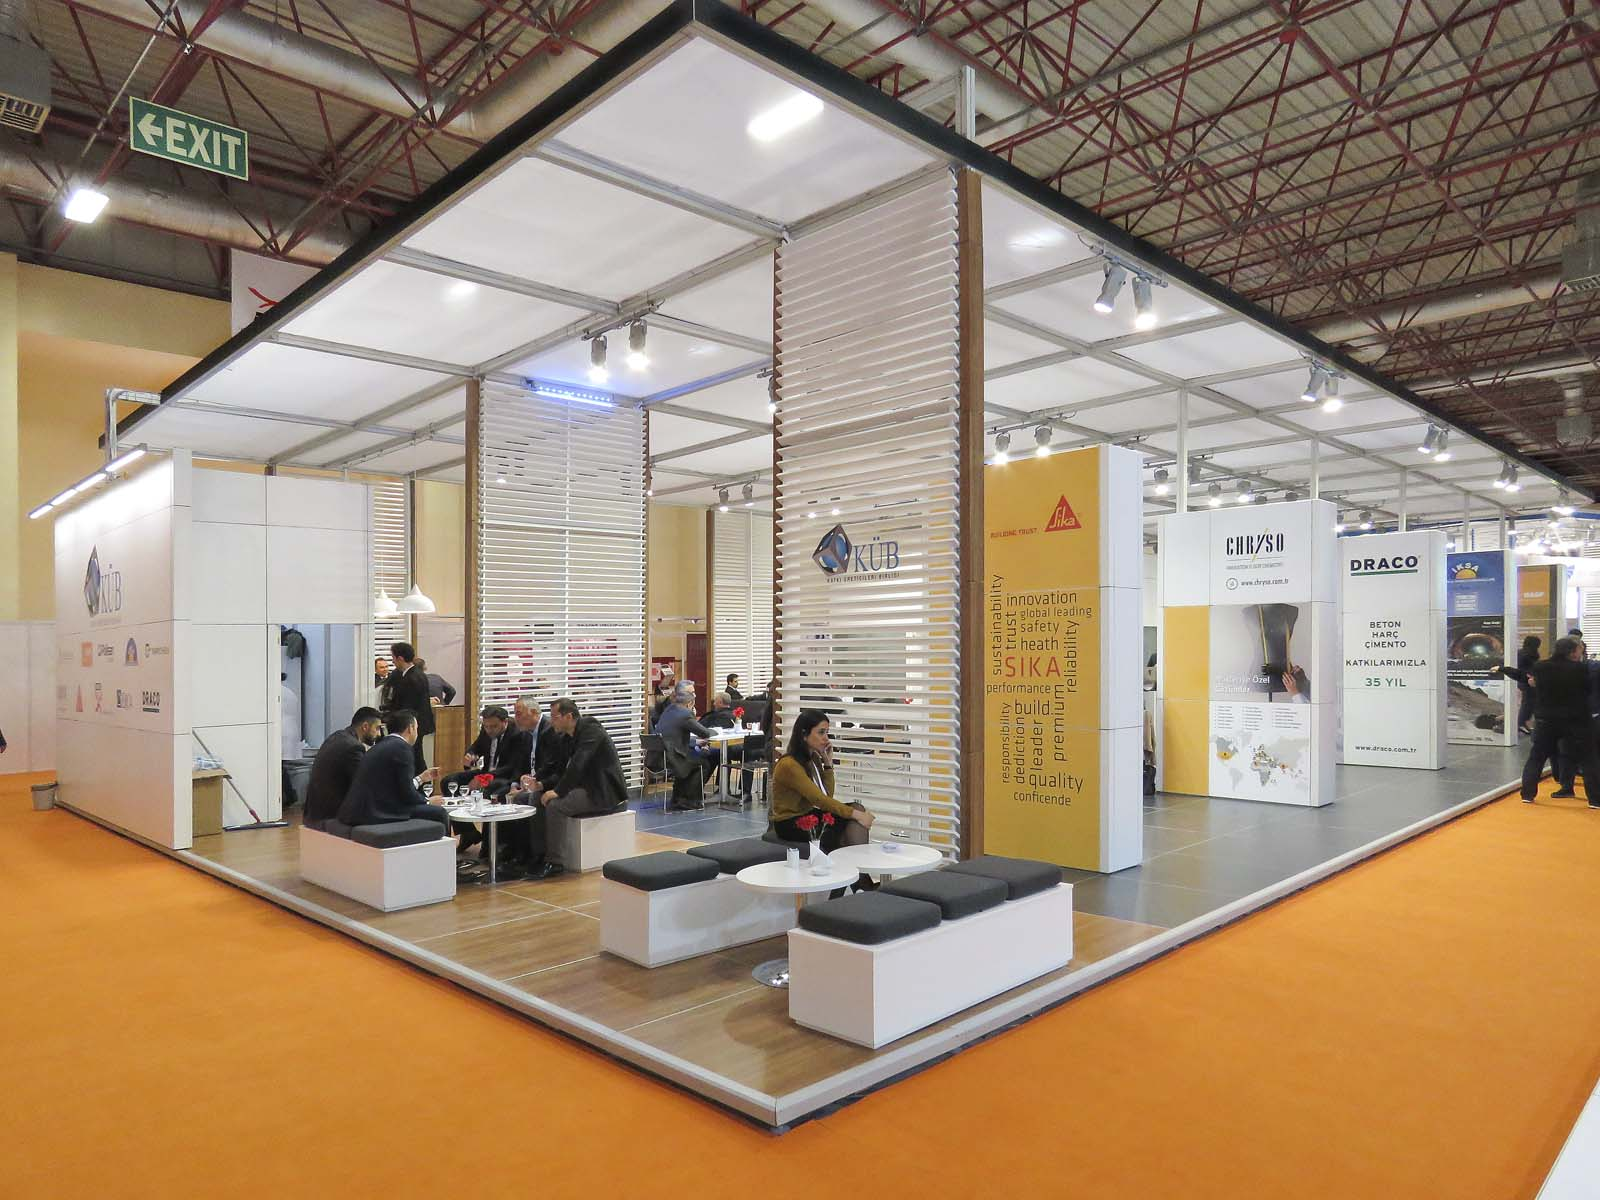 fuar stand design genix exhibition b